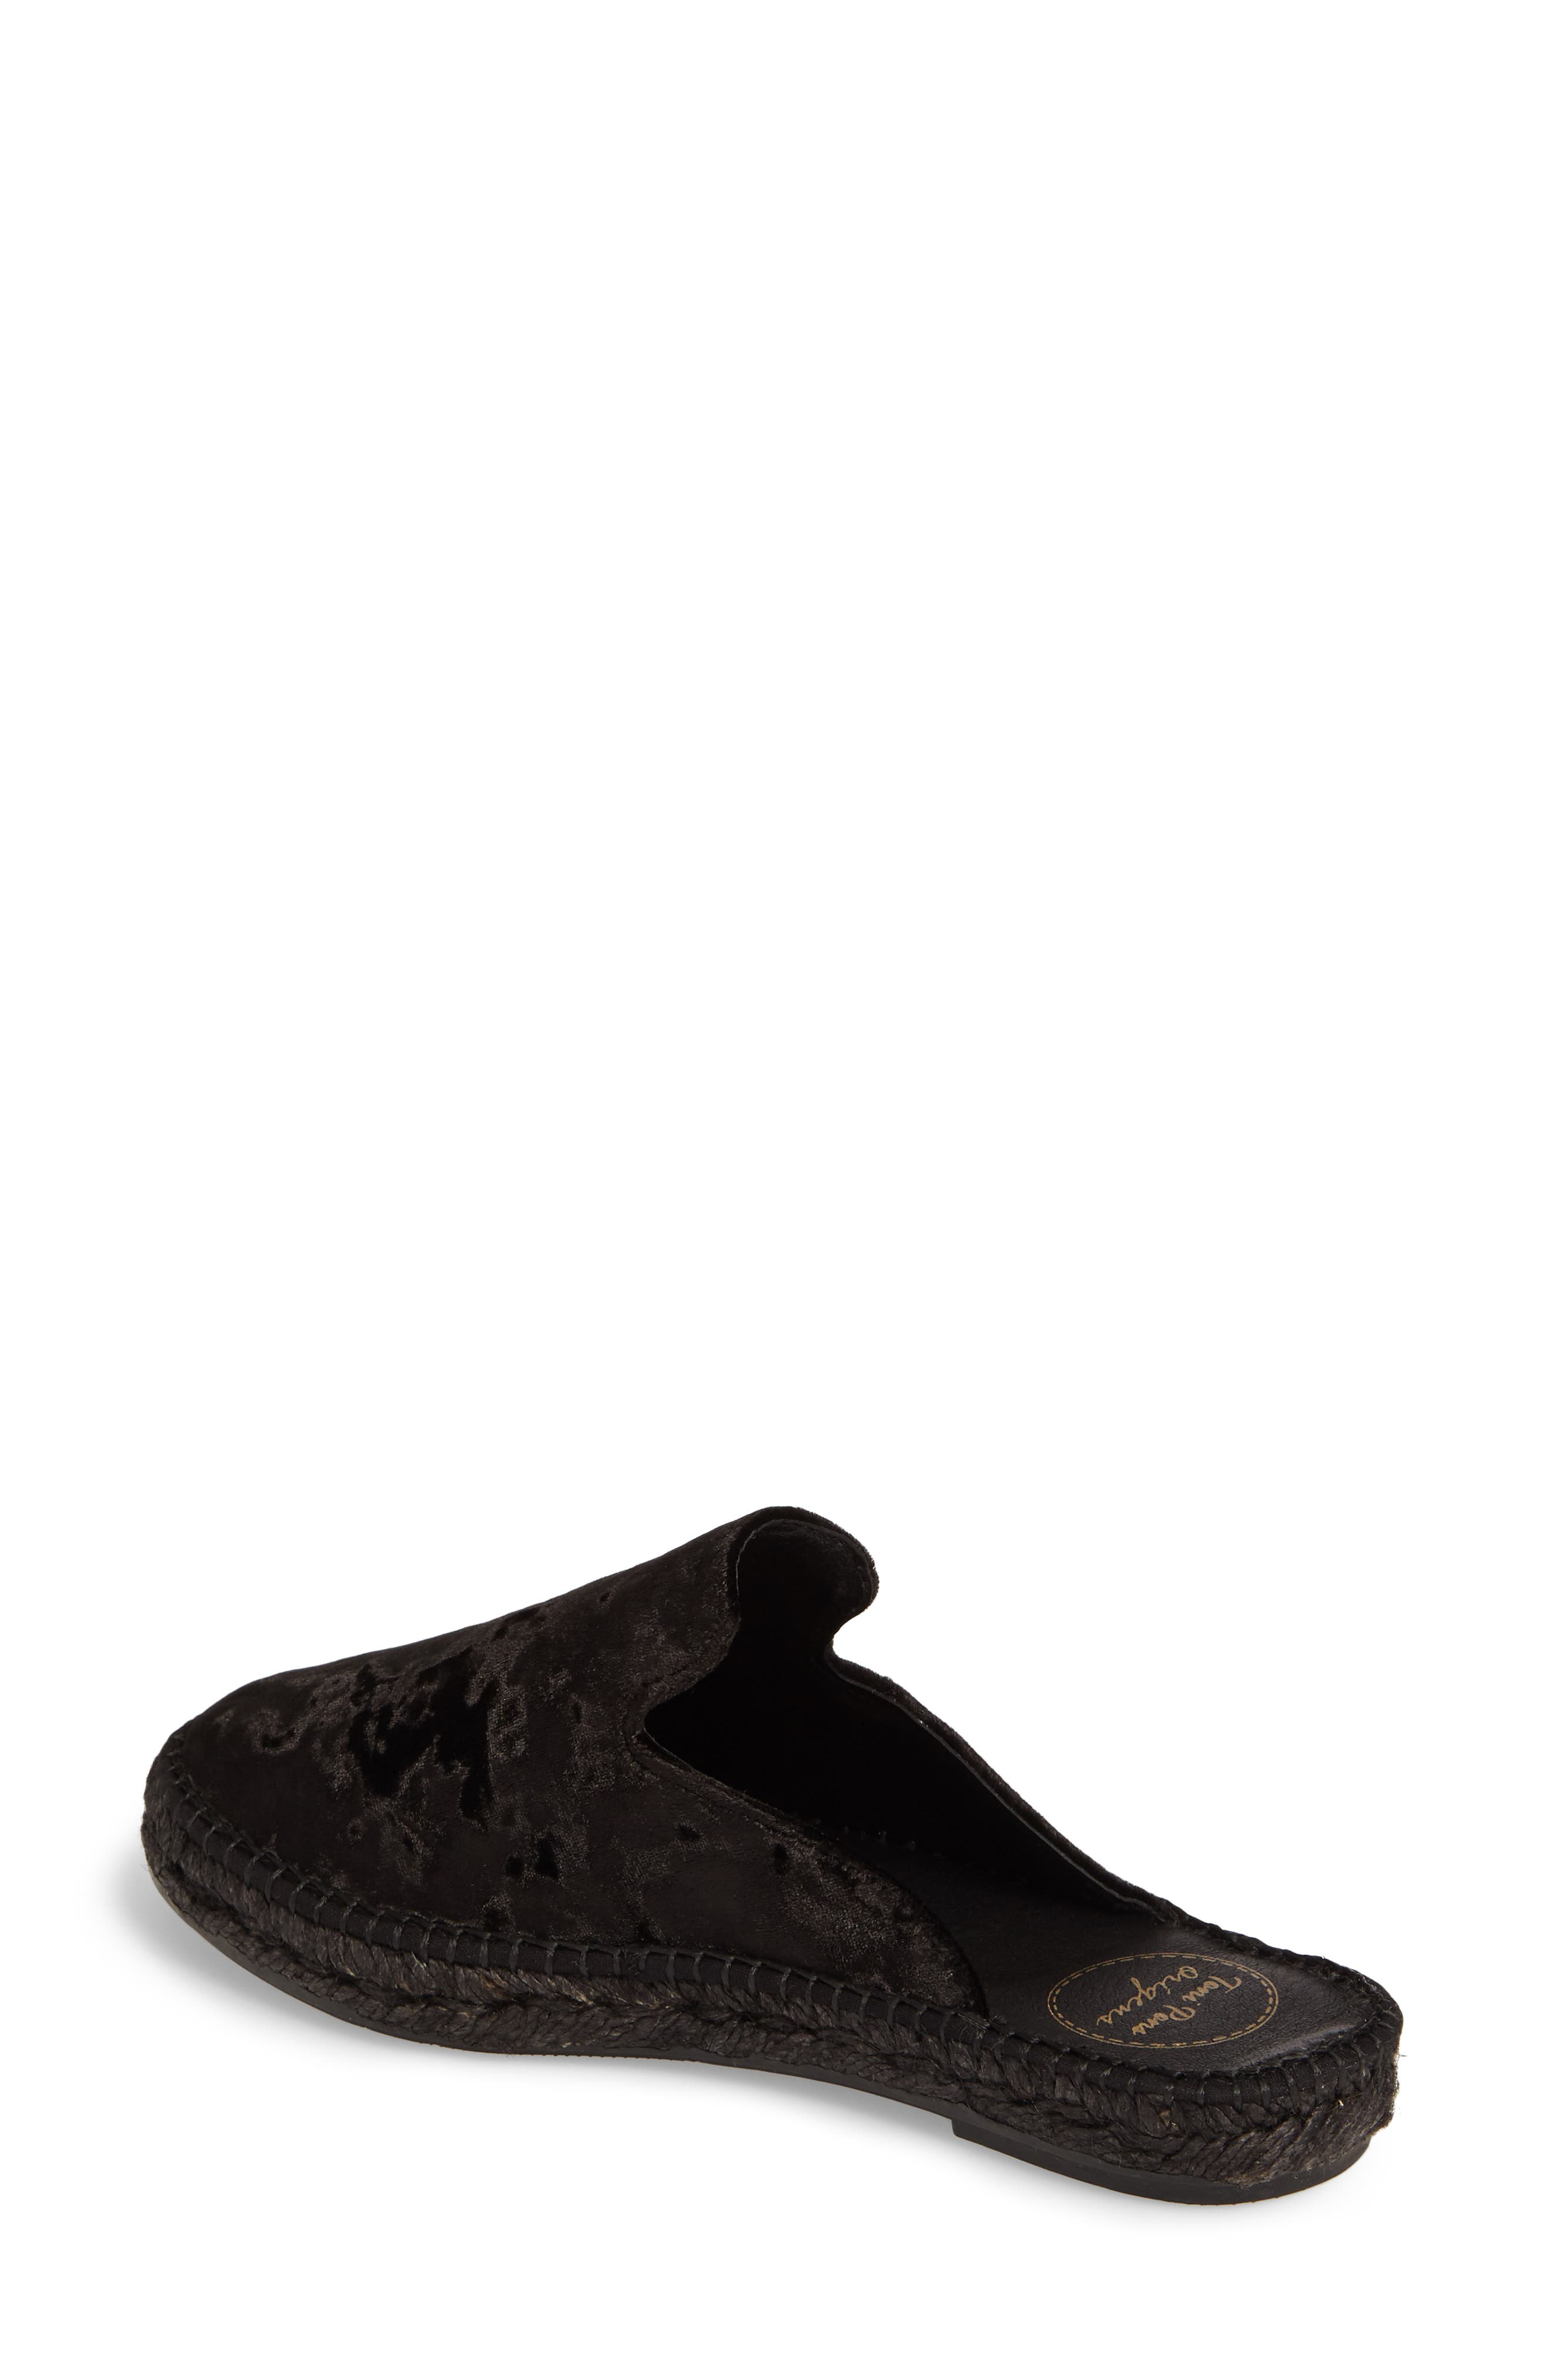 Alternate Image 2  - Toni Pons Malmo Espadrille Slipper Mule (Women)